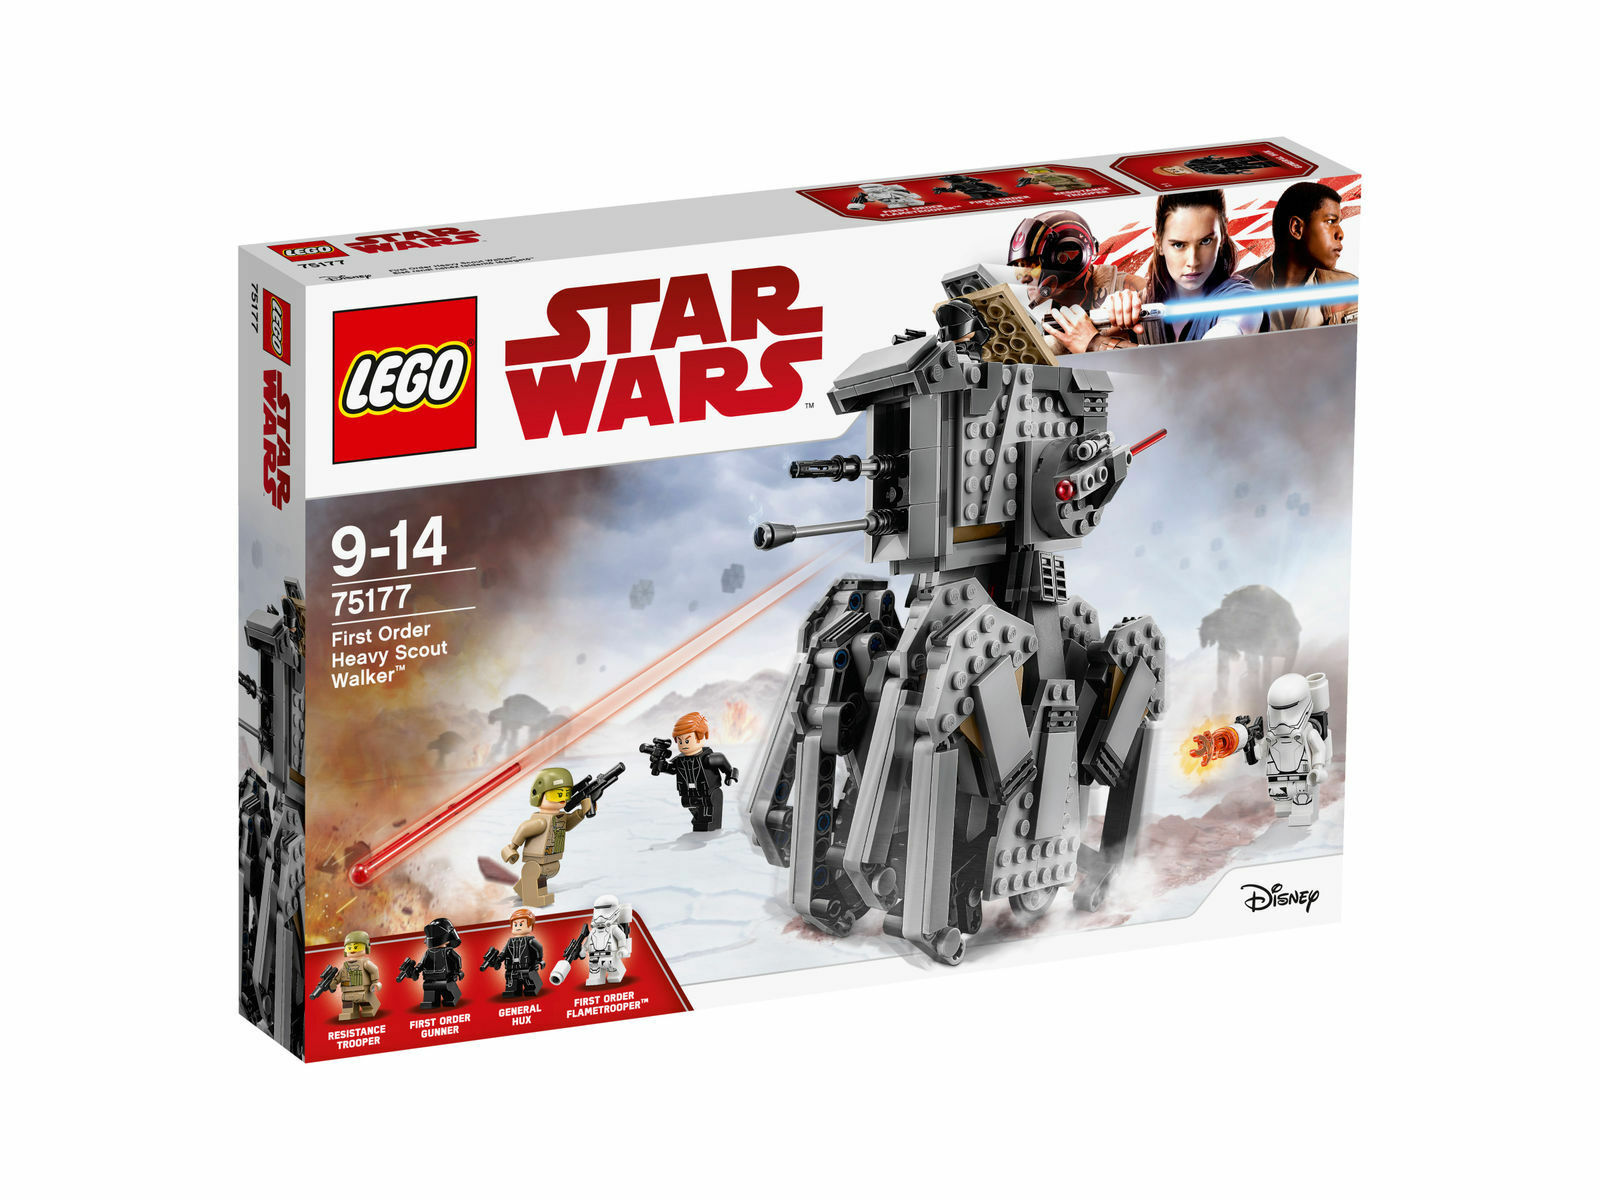 LEGO Star Wars (75177) - First Order Heavy Scout Walker